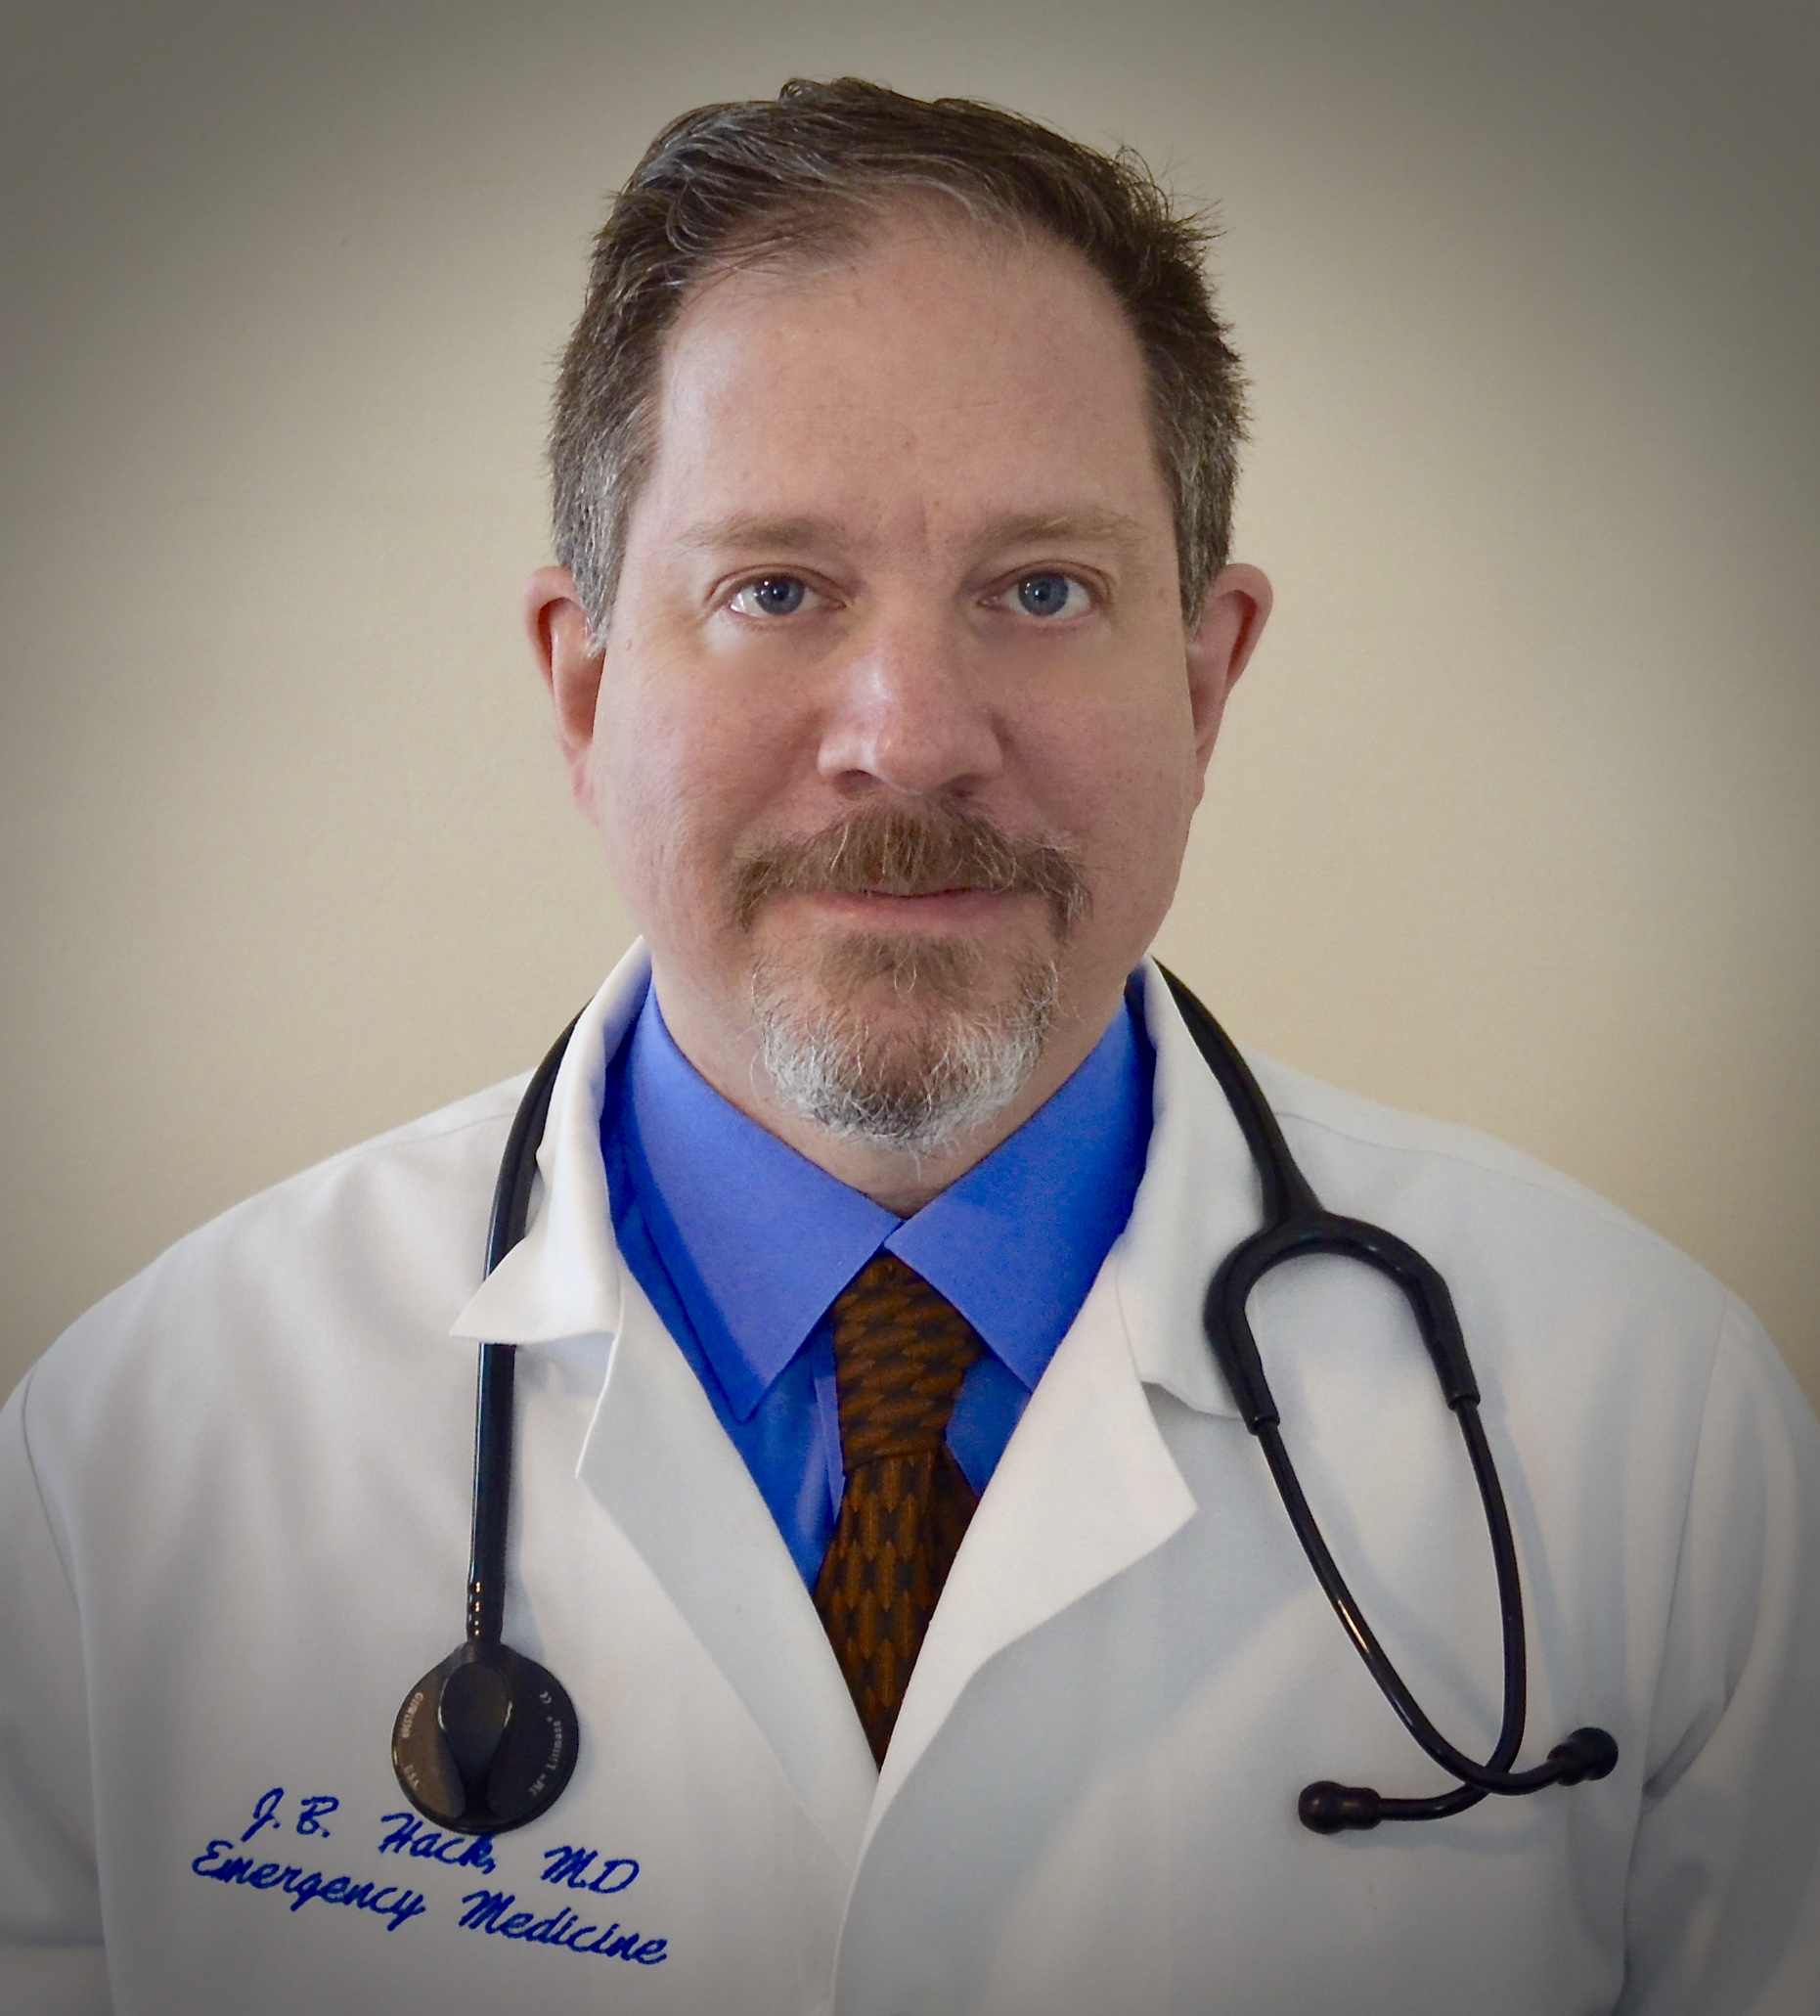 - Jason Hack, MD, FACEP, FACMTDirector, Division of Medical Toxicology. Brown UniversityProfessor, Department of Emergency MedicineWarren Alpert Medical School, Brown University